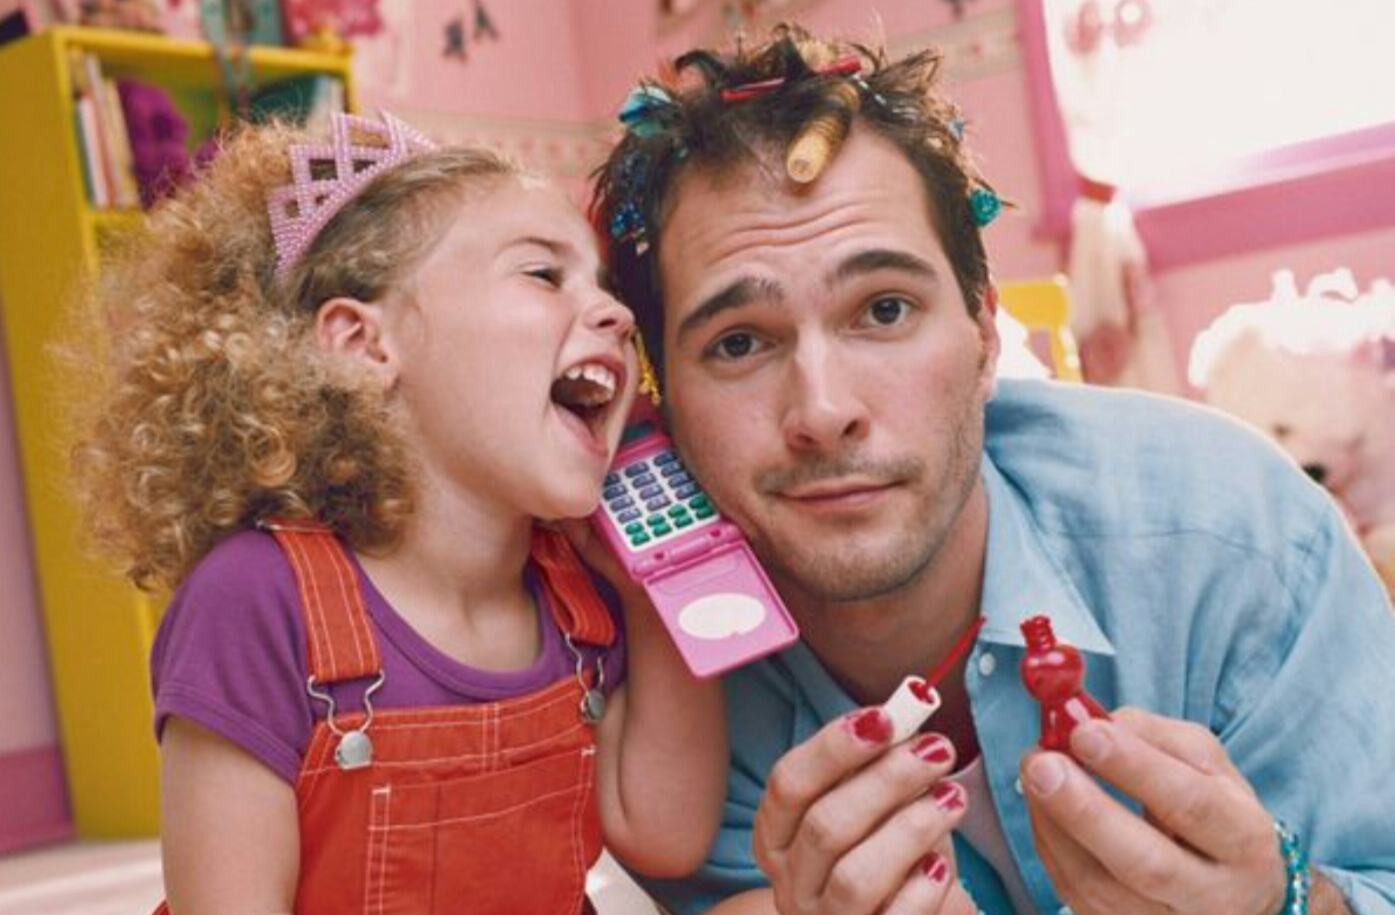 What does it mean to be a girl's dad?